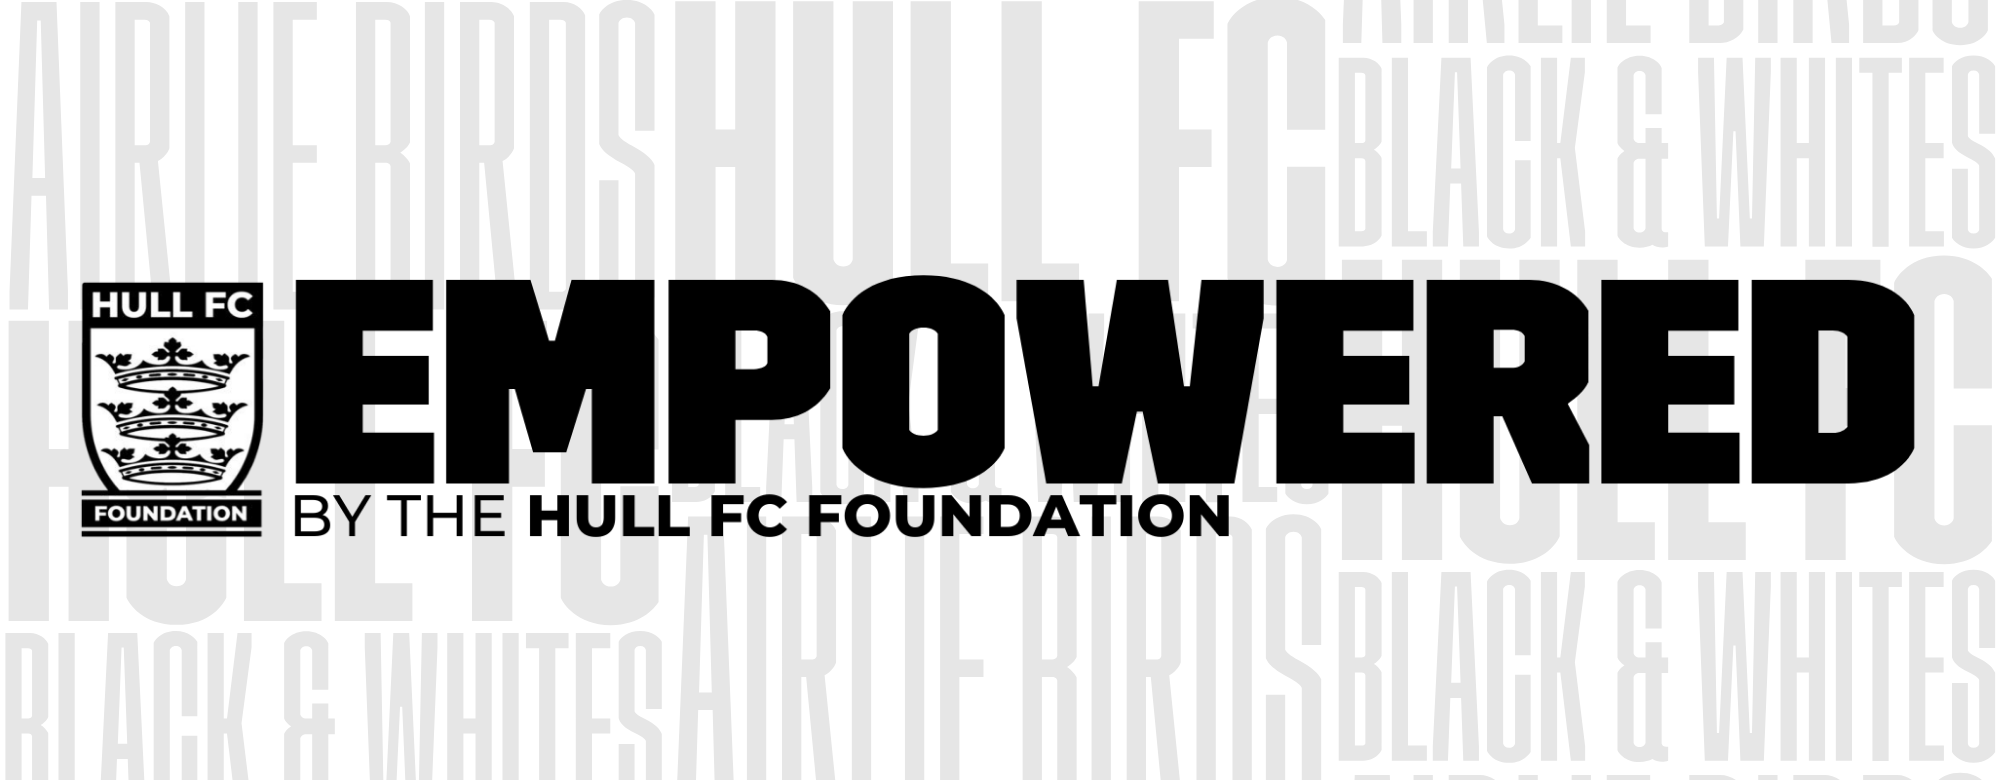 Community Foundation's 'Empower' Project Continuing Throughout Lockdown